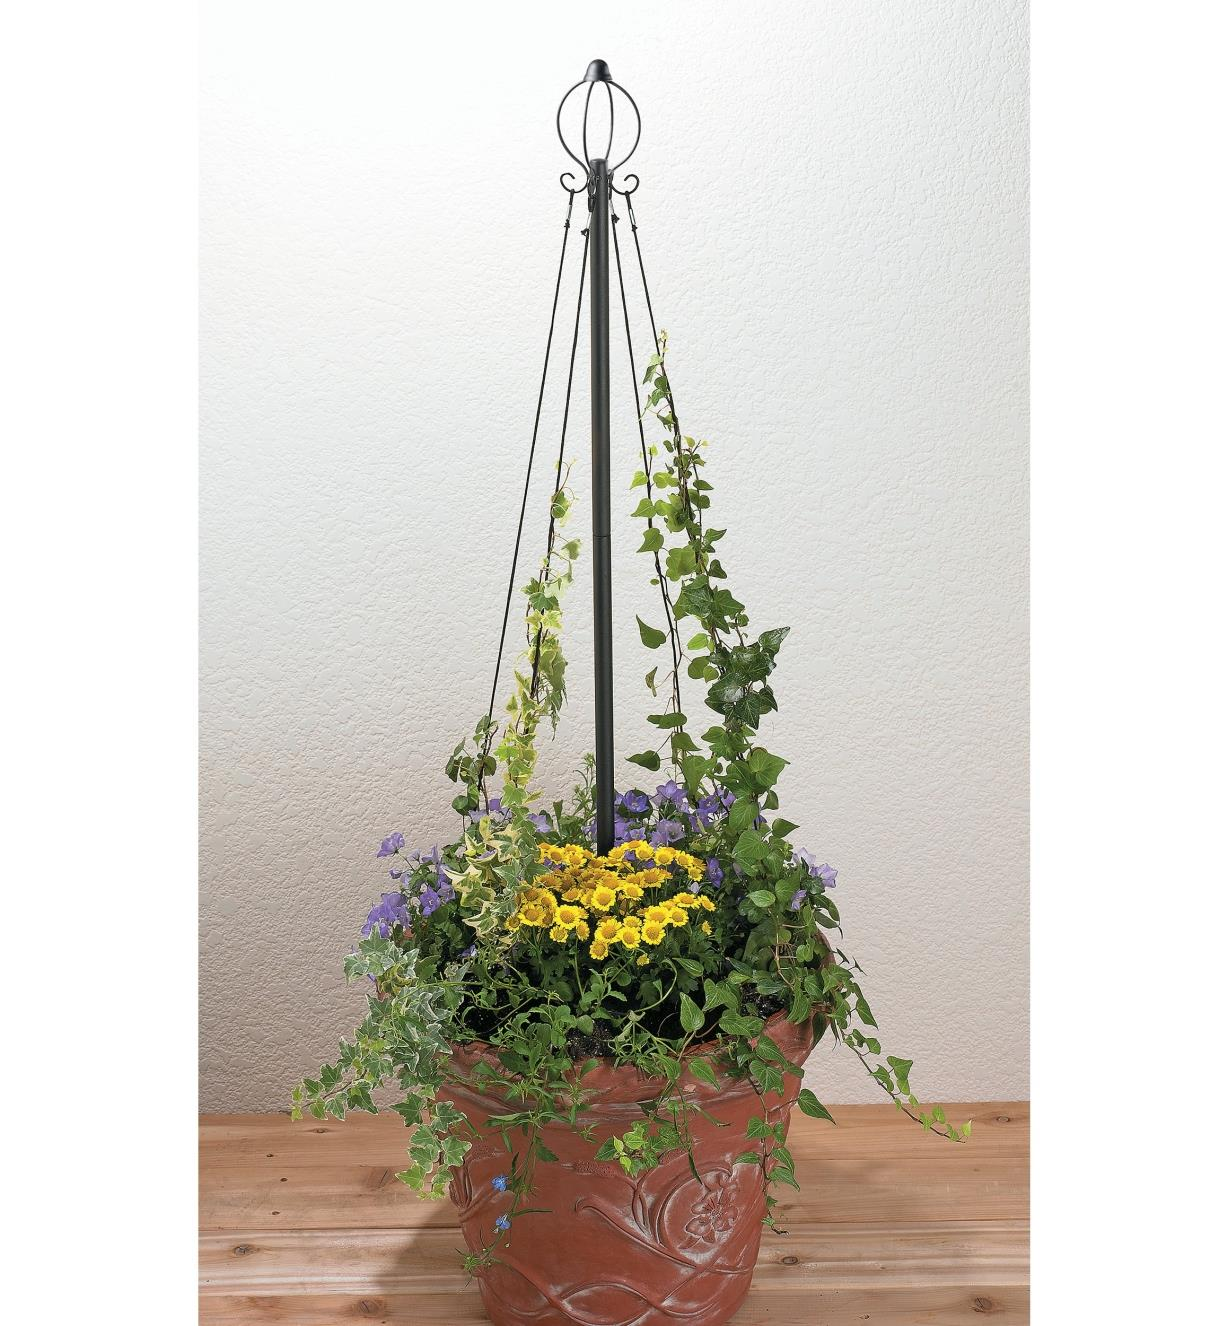 Maypole used in a planter with climbing plants